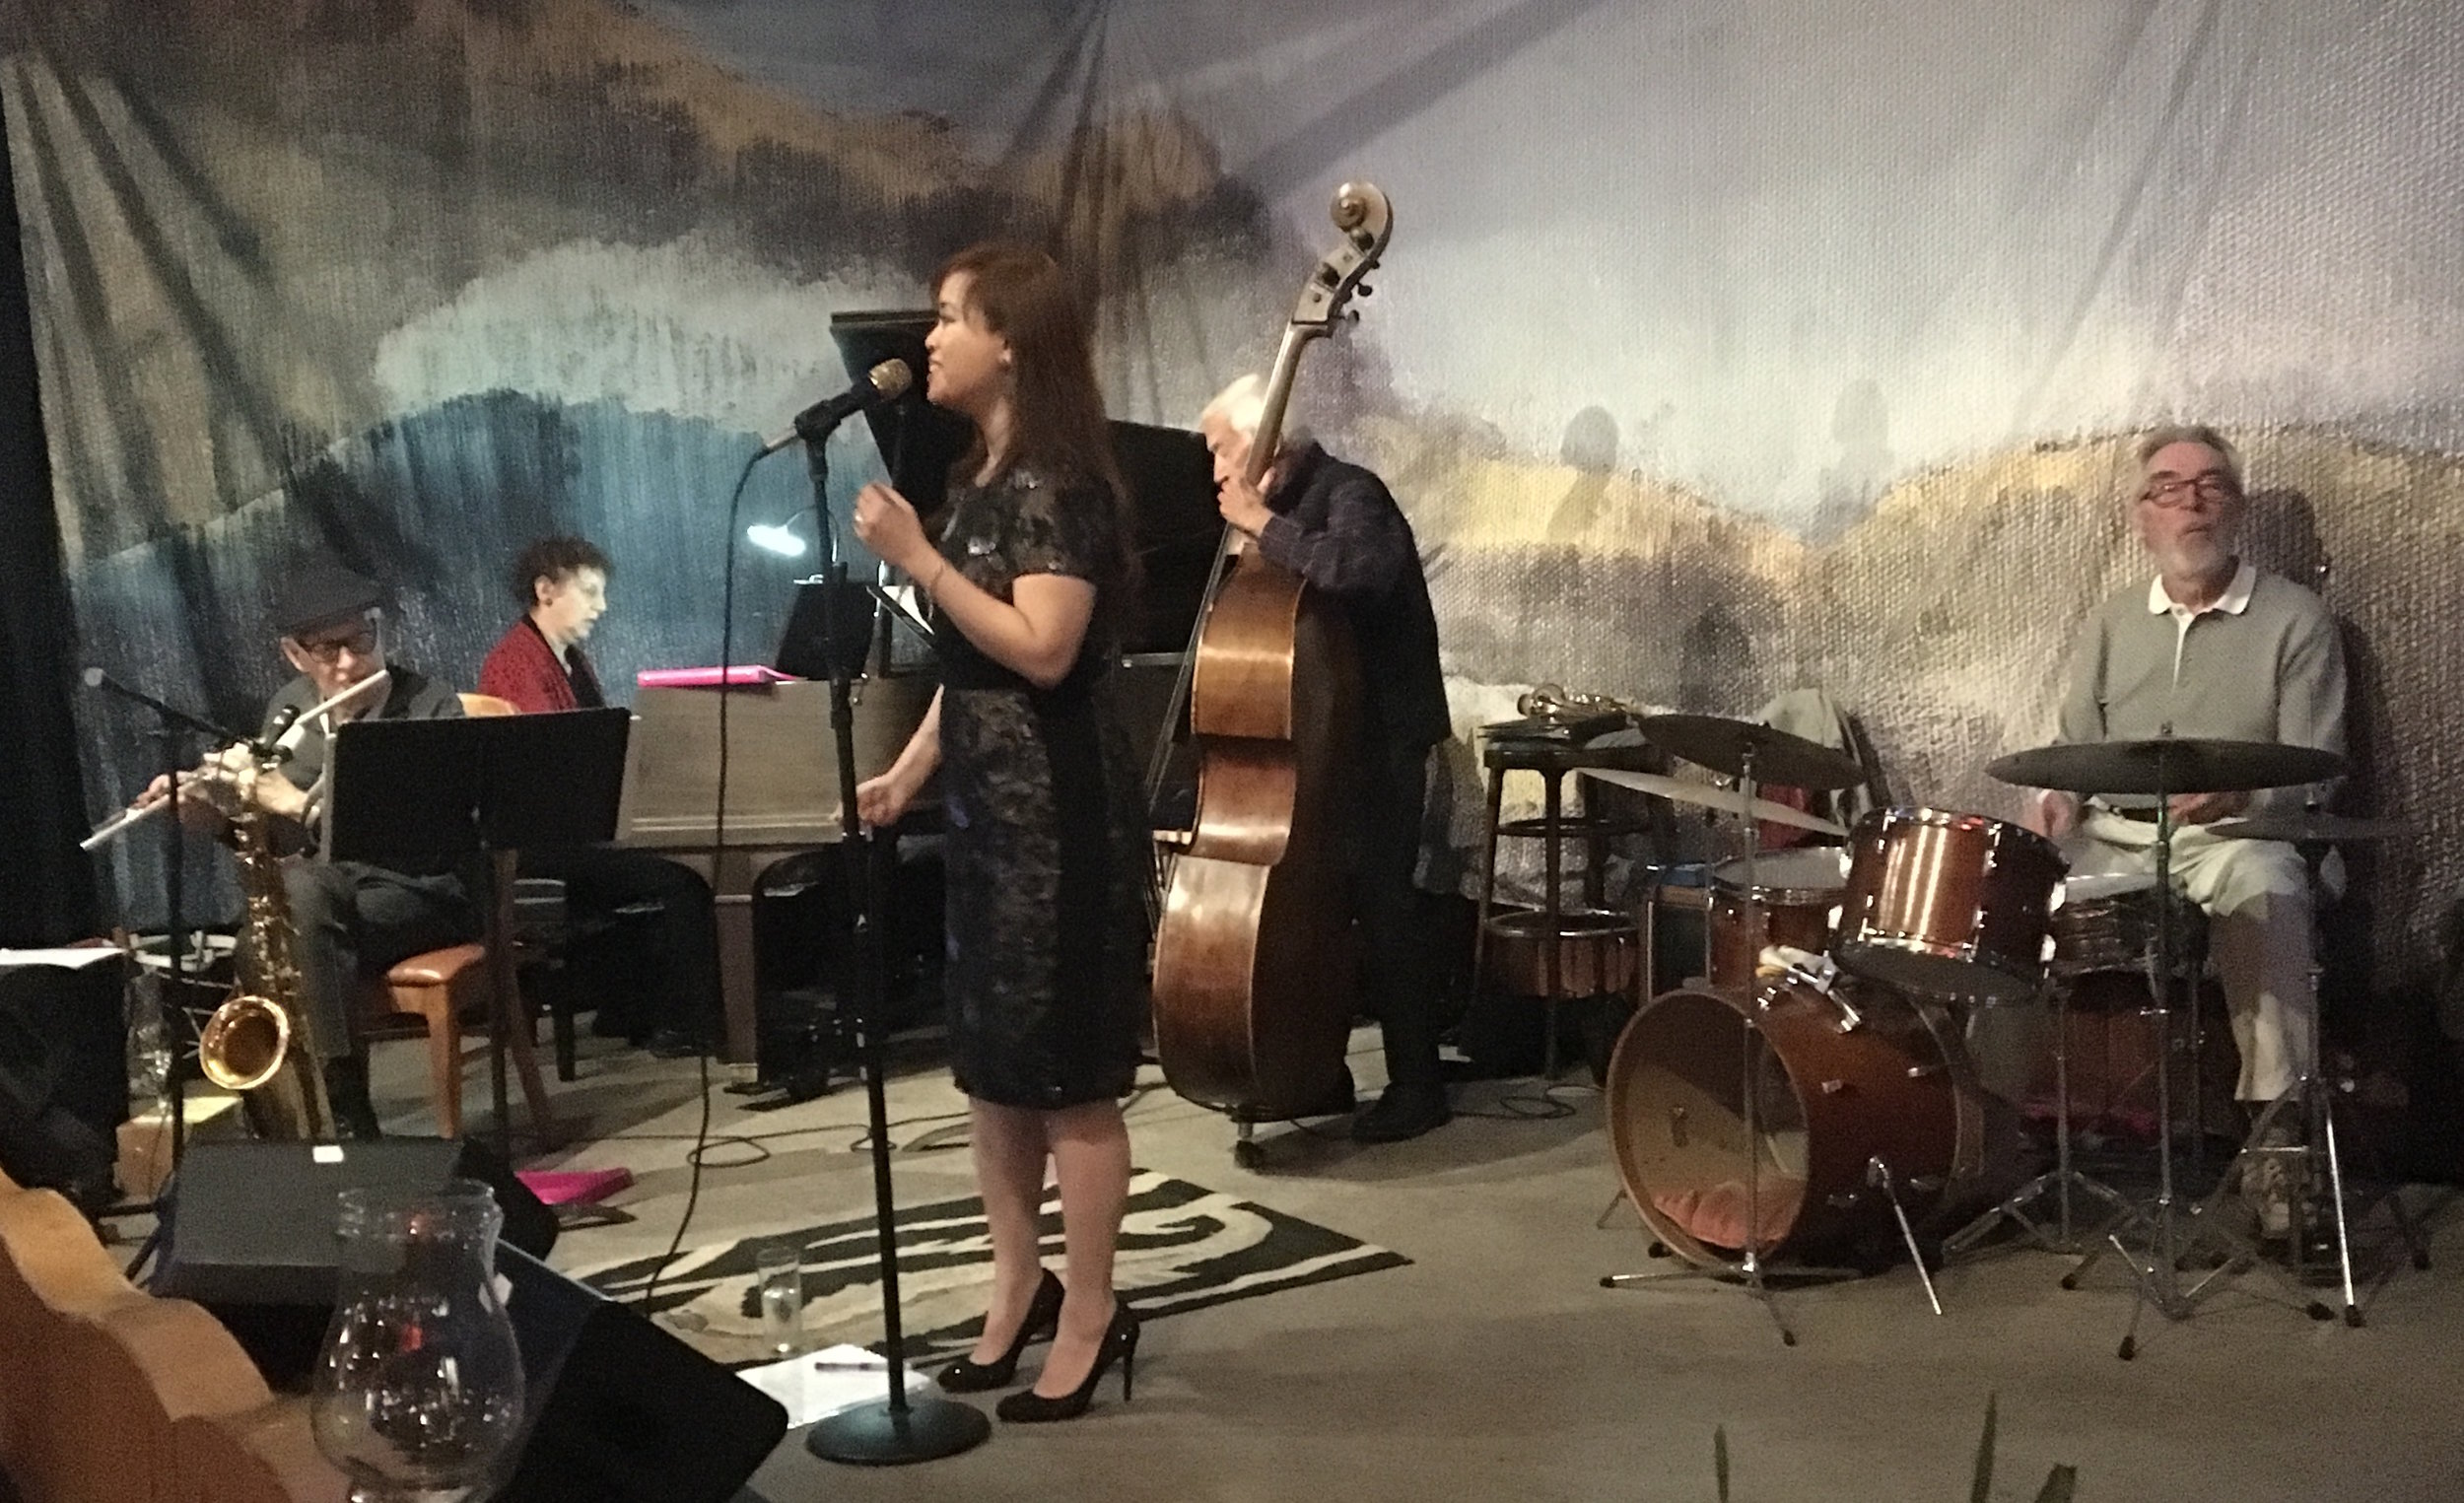 The Sausalito Seahorse with the Noel Jewkes Quartet - Tuesday, May 22nd, 2018 | SausalitoThu was excited and honored to debut at the Sausalito Seahorse with the great Noel Jewkes and his quartet! Noel Jewkes, also known as Dr. Legato, is considered one of the preeminent sax players in Northern California.Noel Jewkes - sax, flute; Laura Klein - piano; Dean Reilly - upright bass; Lee Charlton - drums